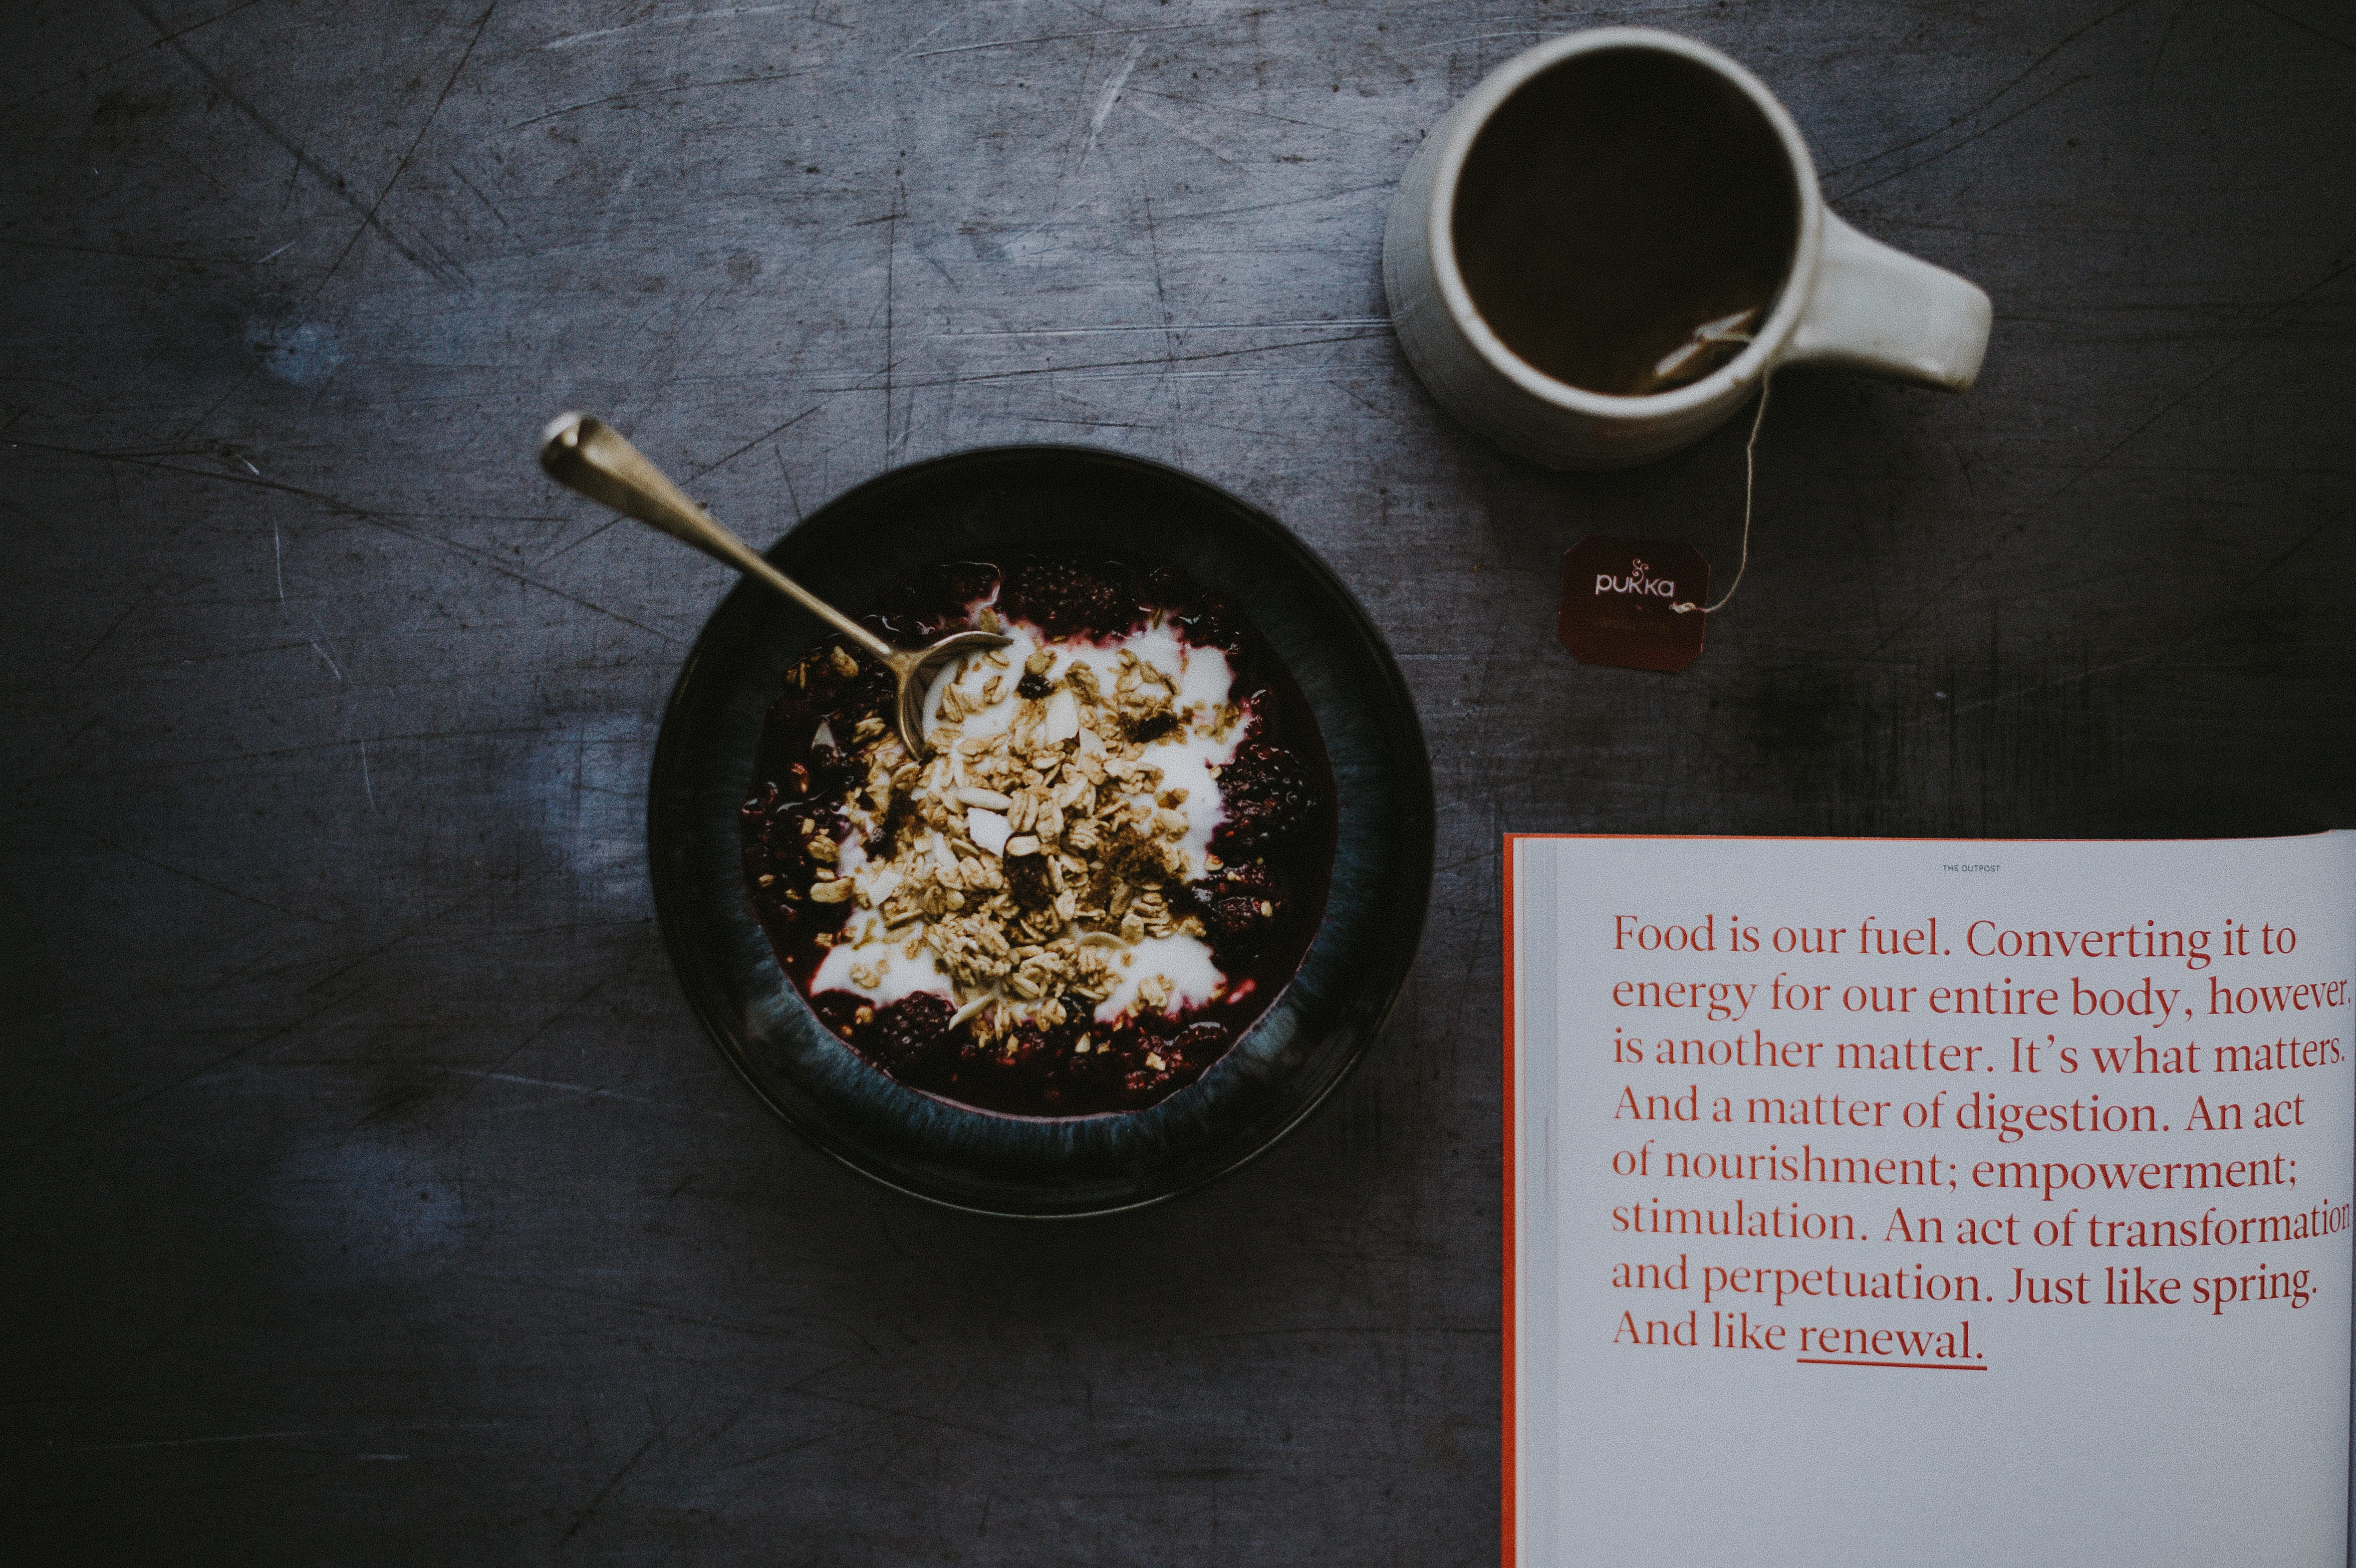 cereal in black bowl beside coffee cup